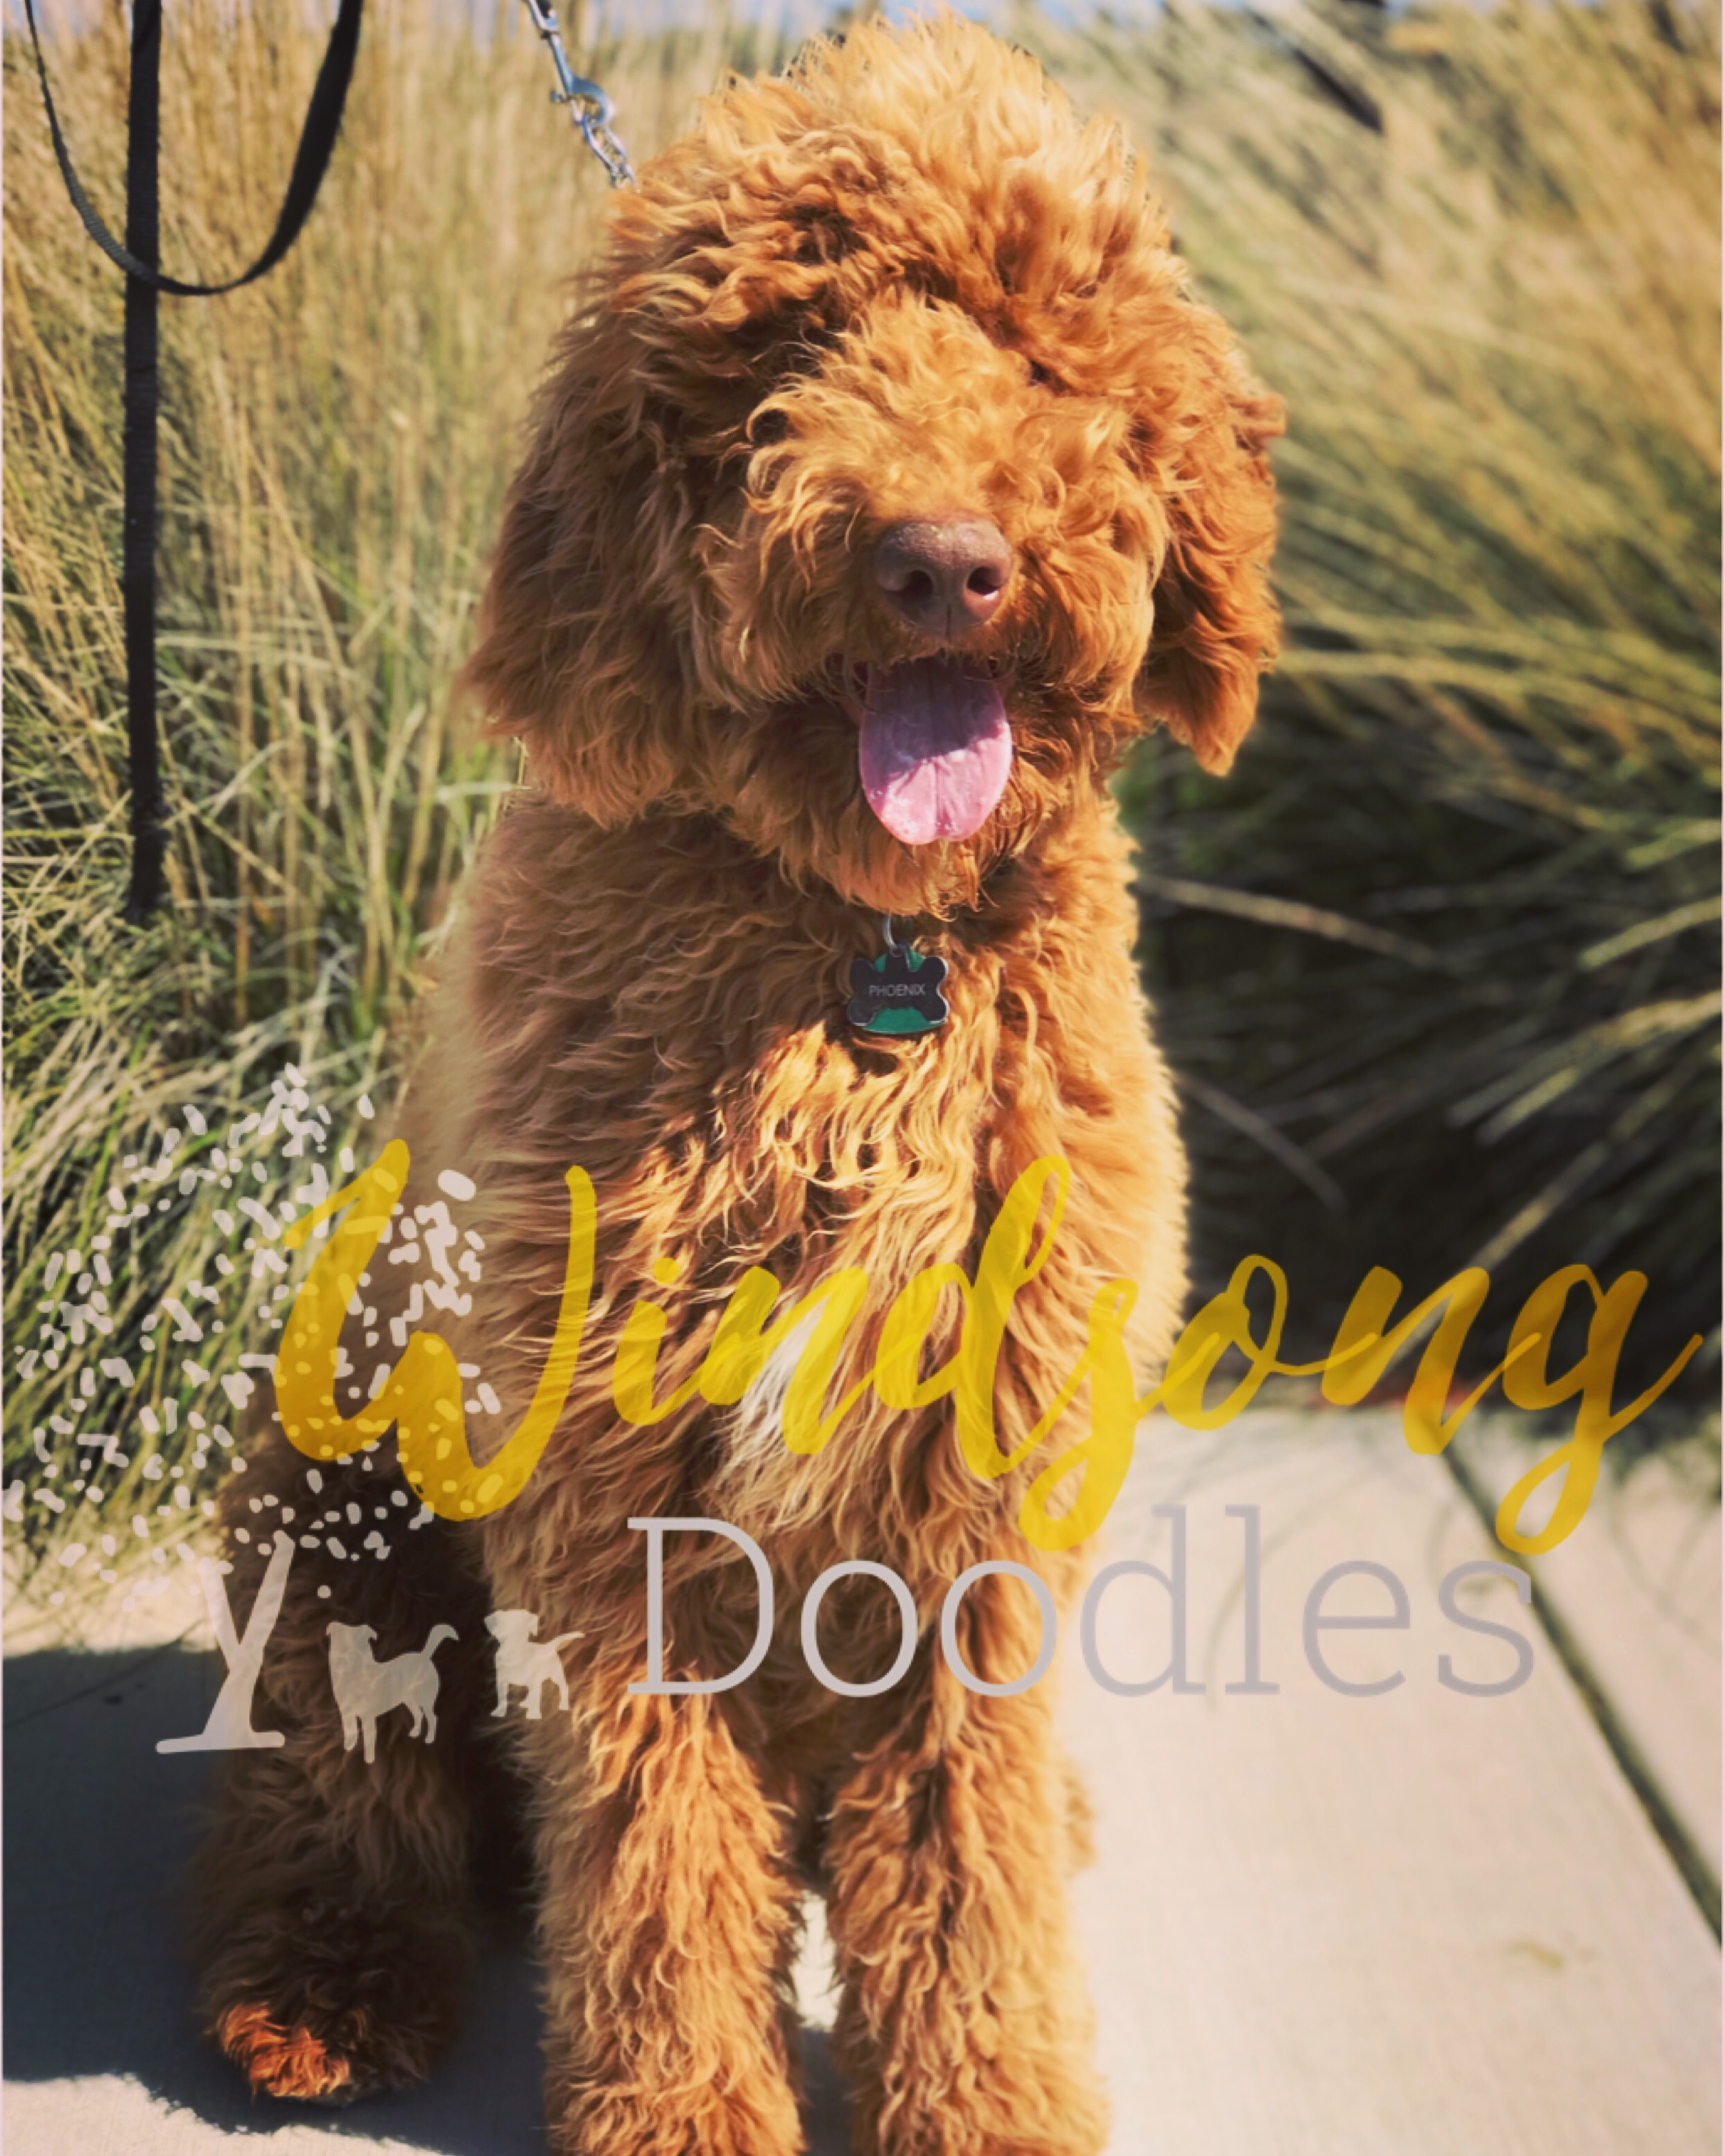 """Windsong's Rising Phoenix """"Phoenix"""" - Phoenix is the most laid back and mellow giant!! We love his temperament and his gorgeous long, shaggy doodle coat. Phoenix is adored by his wonderful guardian family. He will join our program in Fall 2019 and we are excited to see what he will produce!Phoenix's Stats:Generation: Standard F1b Goldendoodle Coat: Wavy Color: Red (e/e, b/b, IC clear, Cu C/Cu C, S/sP, sd/sd) Size: Standard 63 lbs.Health Testing:-OFA Hips Prelim Fair -OFA Elbows Prelim Normal -Eyes: OFA clear/normal -Degenerative Myelopathy clear -Ichthyosis clear -Neonatal Encephalopathy w/ seizures clear -Progressive Retinal Atrophy 1 & 2 clear -Progressive Rod-Cone degeneration clear -vWD clear"""